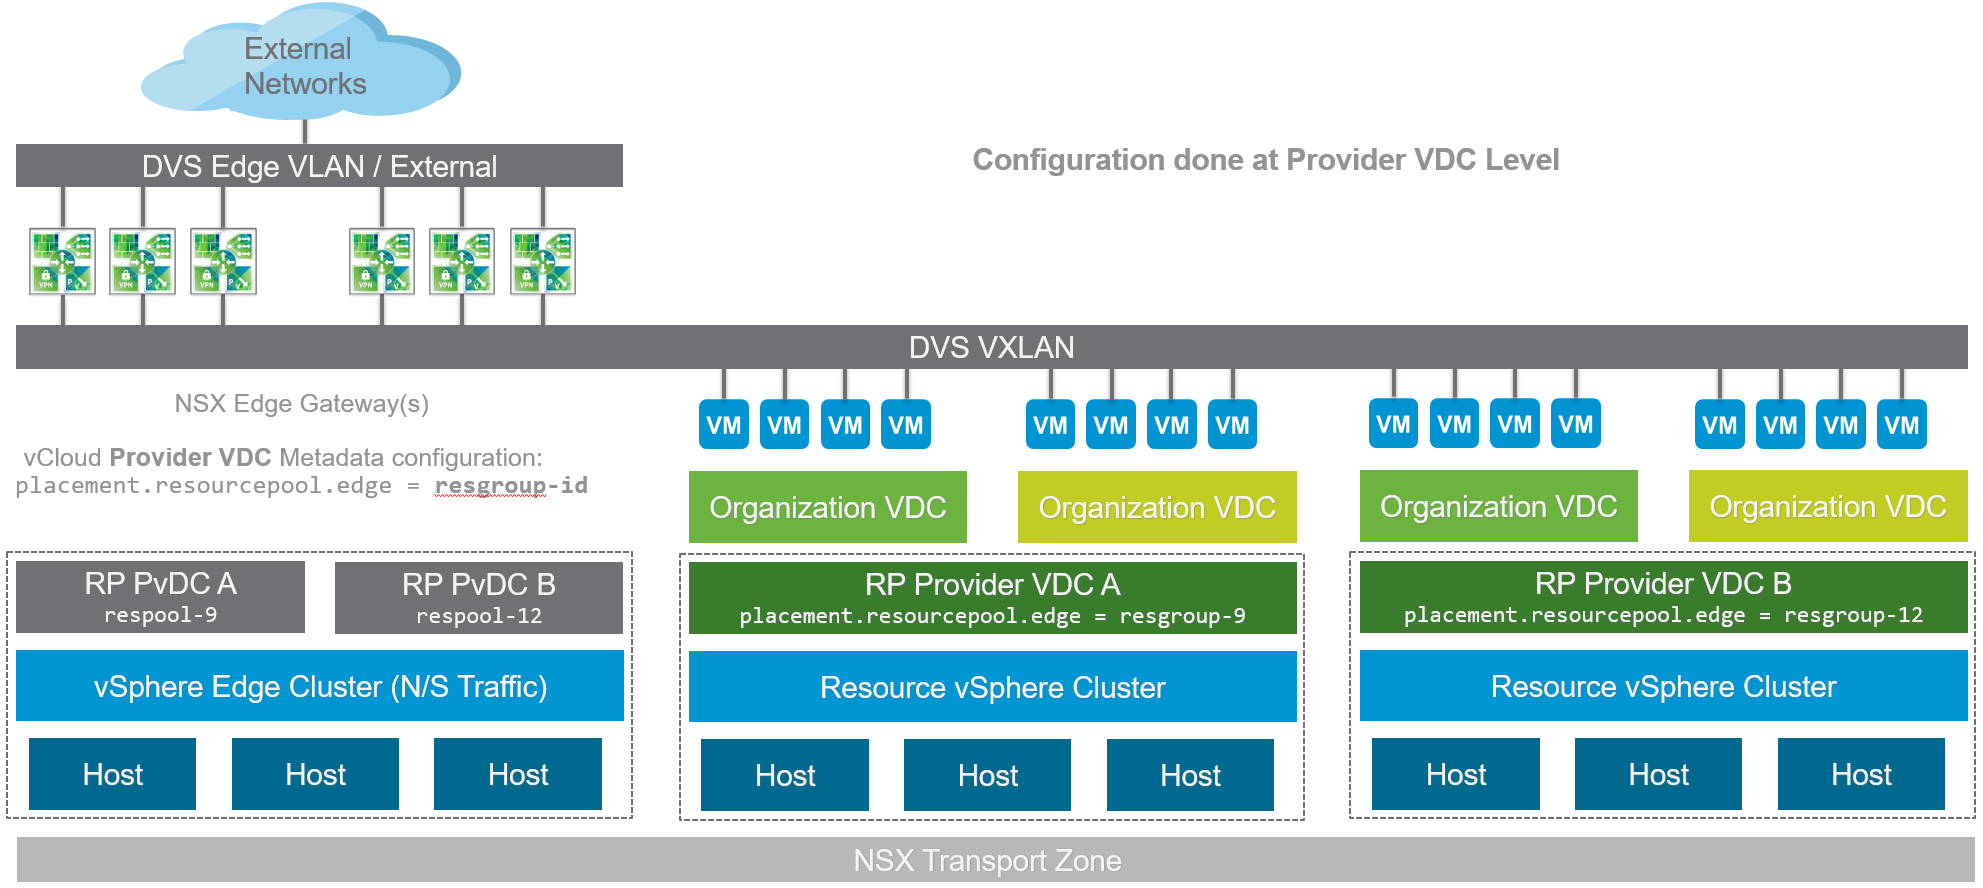 NSX Edge Gateway Cluster Placement High Level Topology